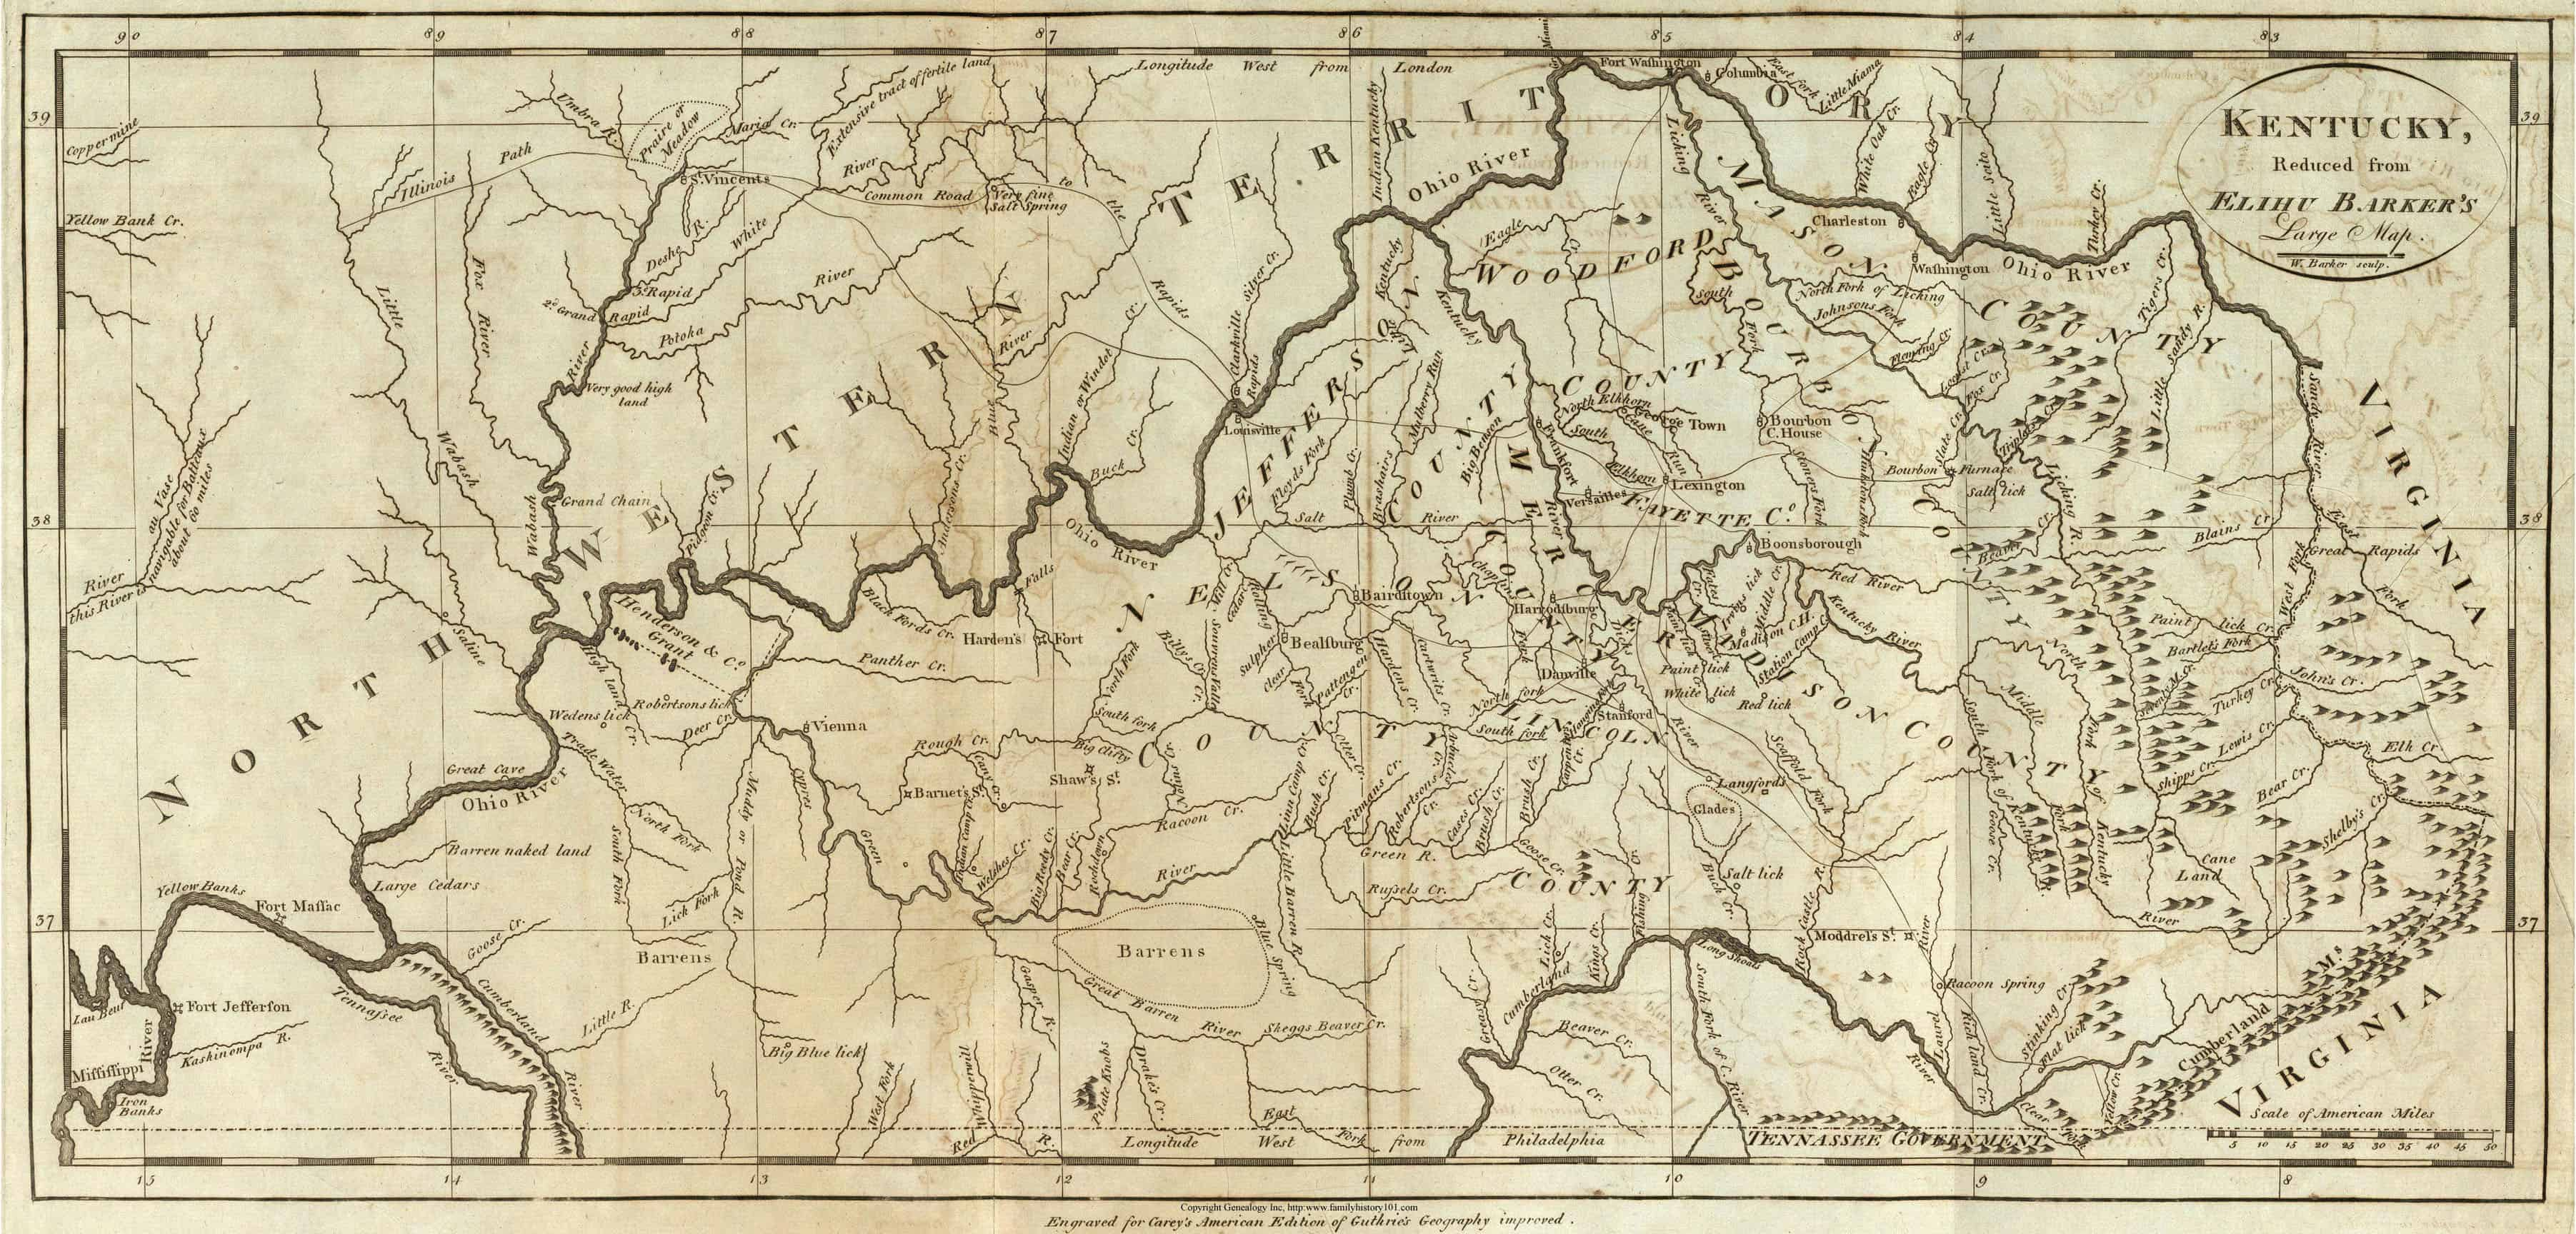 1839 KY MAP LESLIE LETCHER LEWIS LINCOLN LIVINGSTON COUNTY Kentucky History HUGE